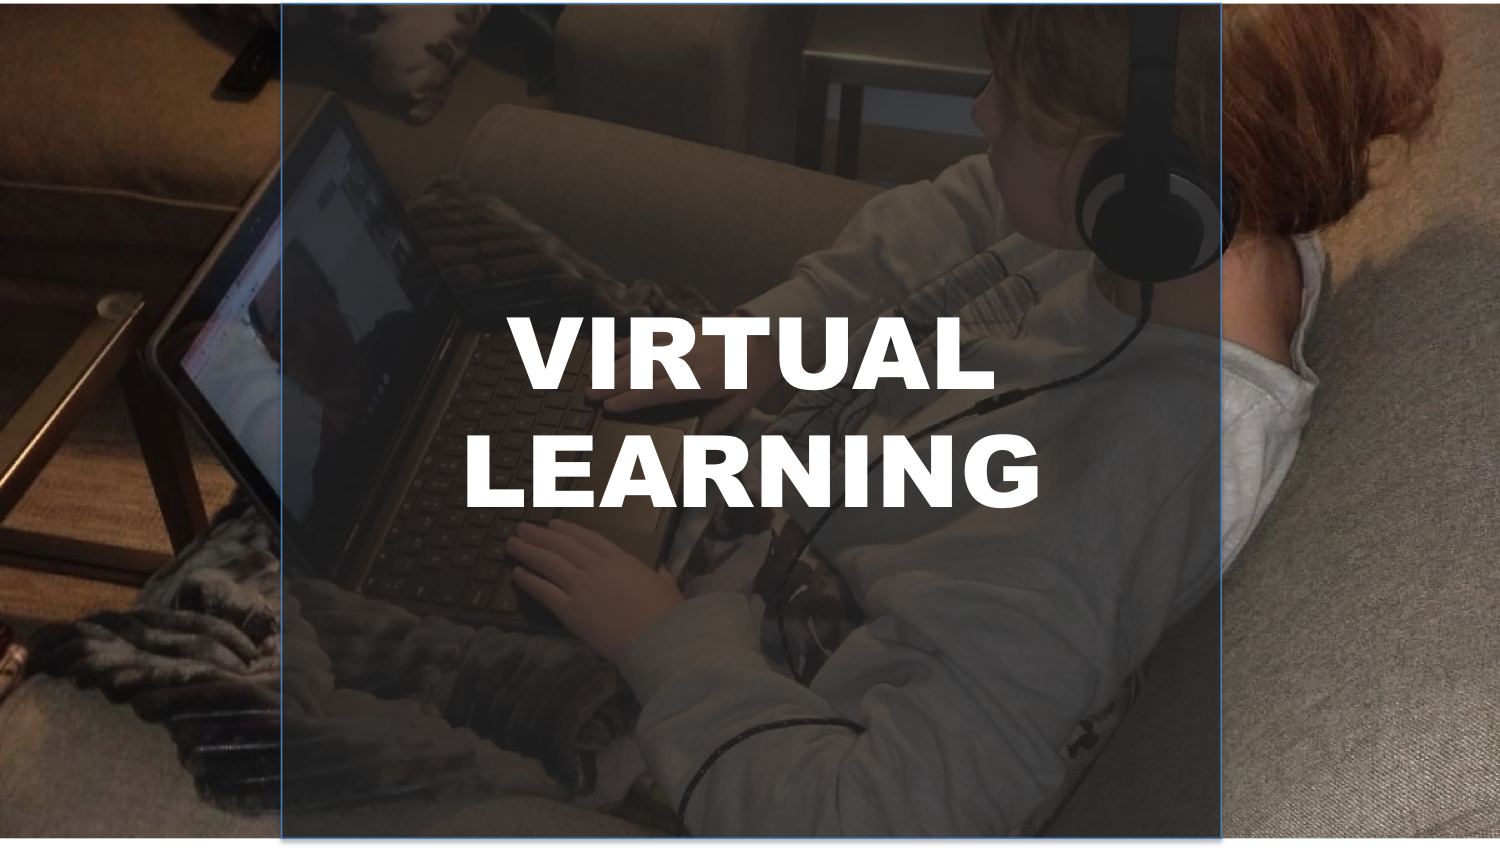 VIRTUAL LEARNING BFIS